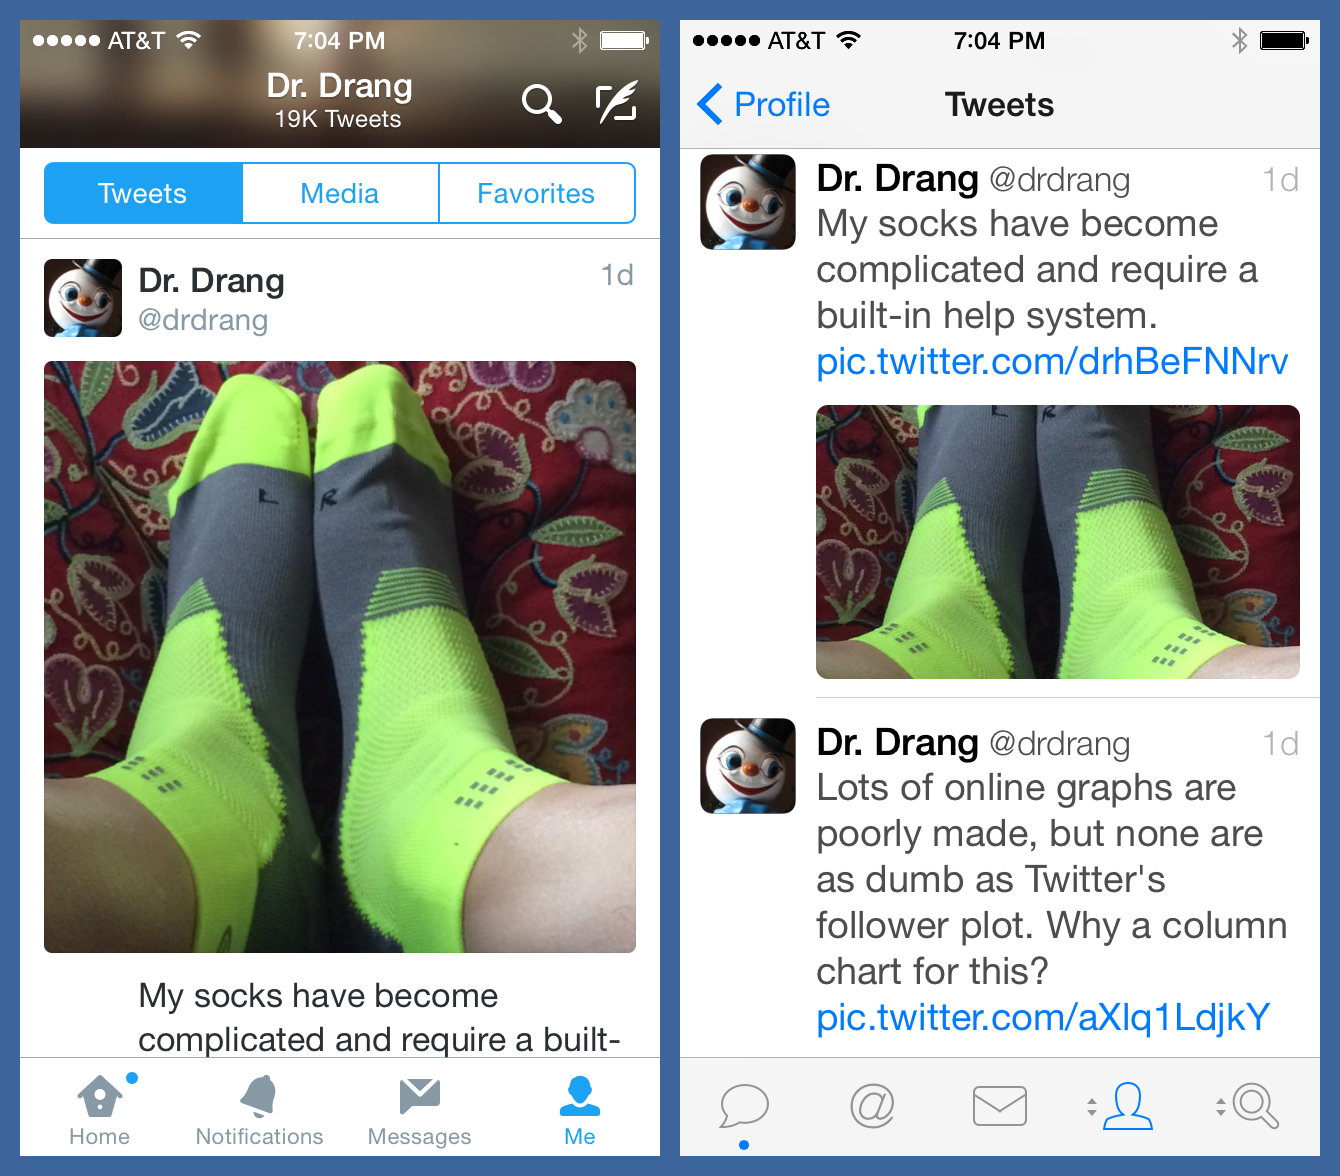 Twitter and Tweetbot images